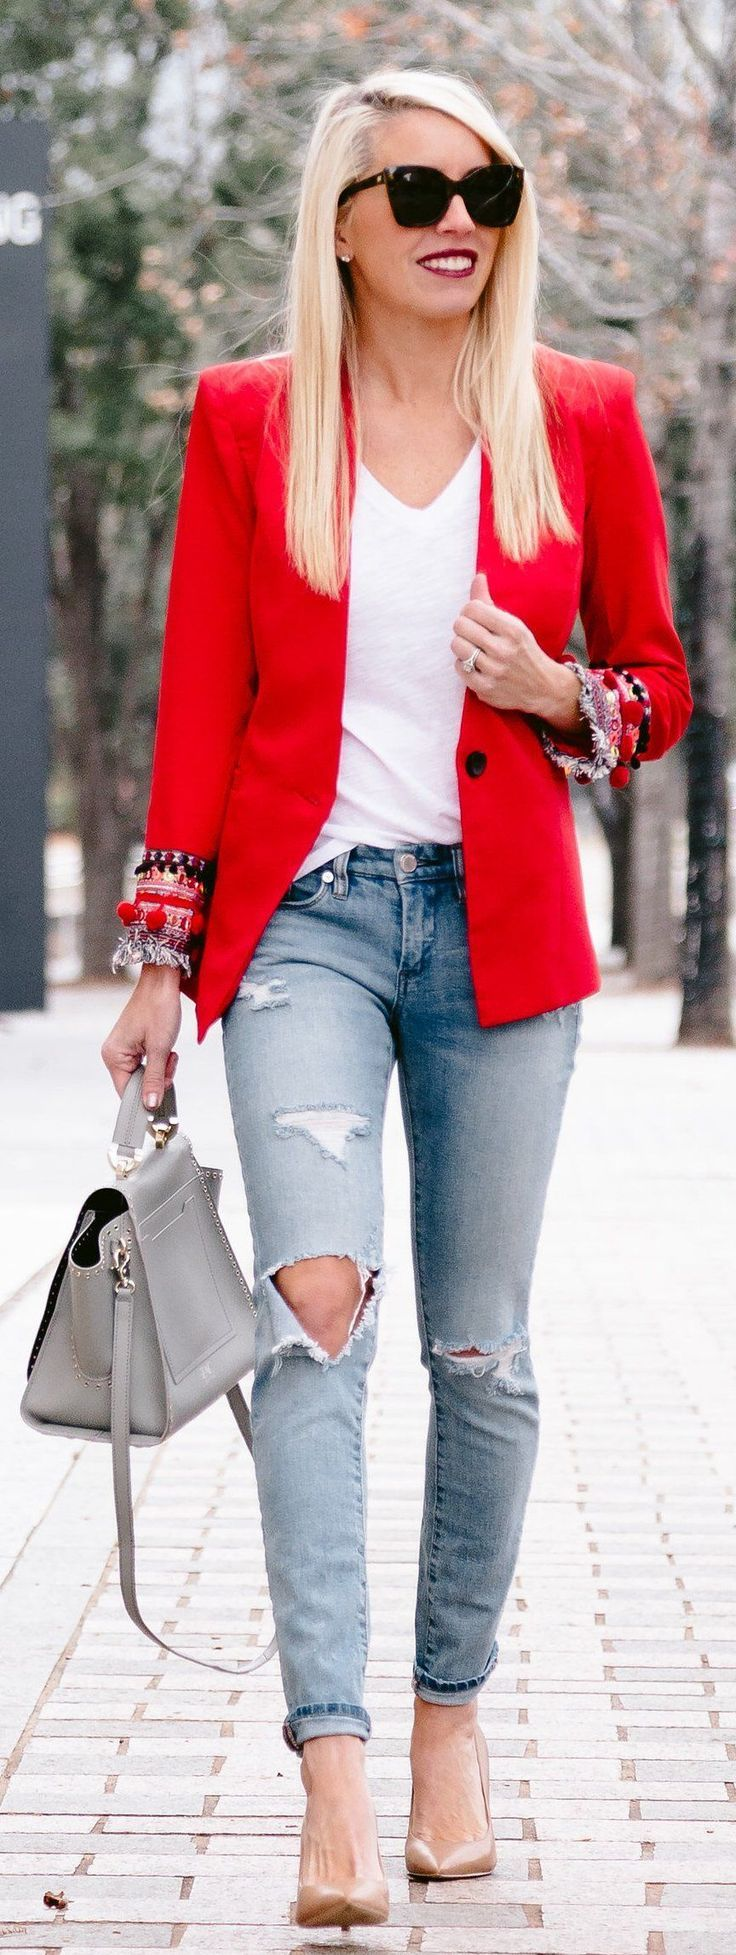 Image result for moschino cheap and chic red blazer outfit